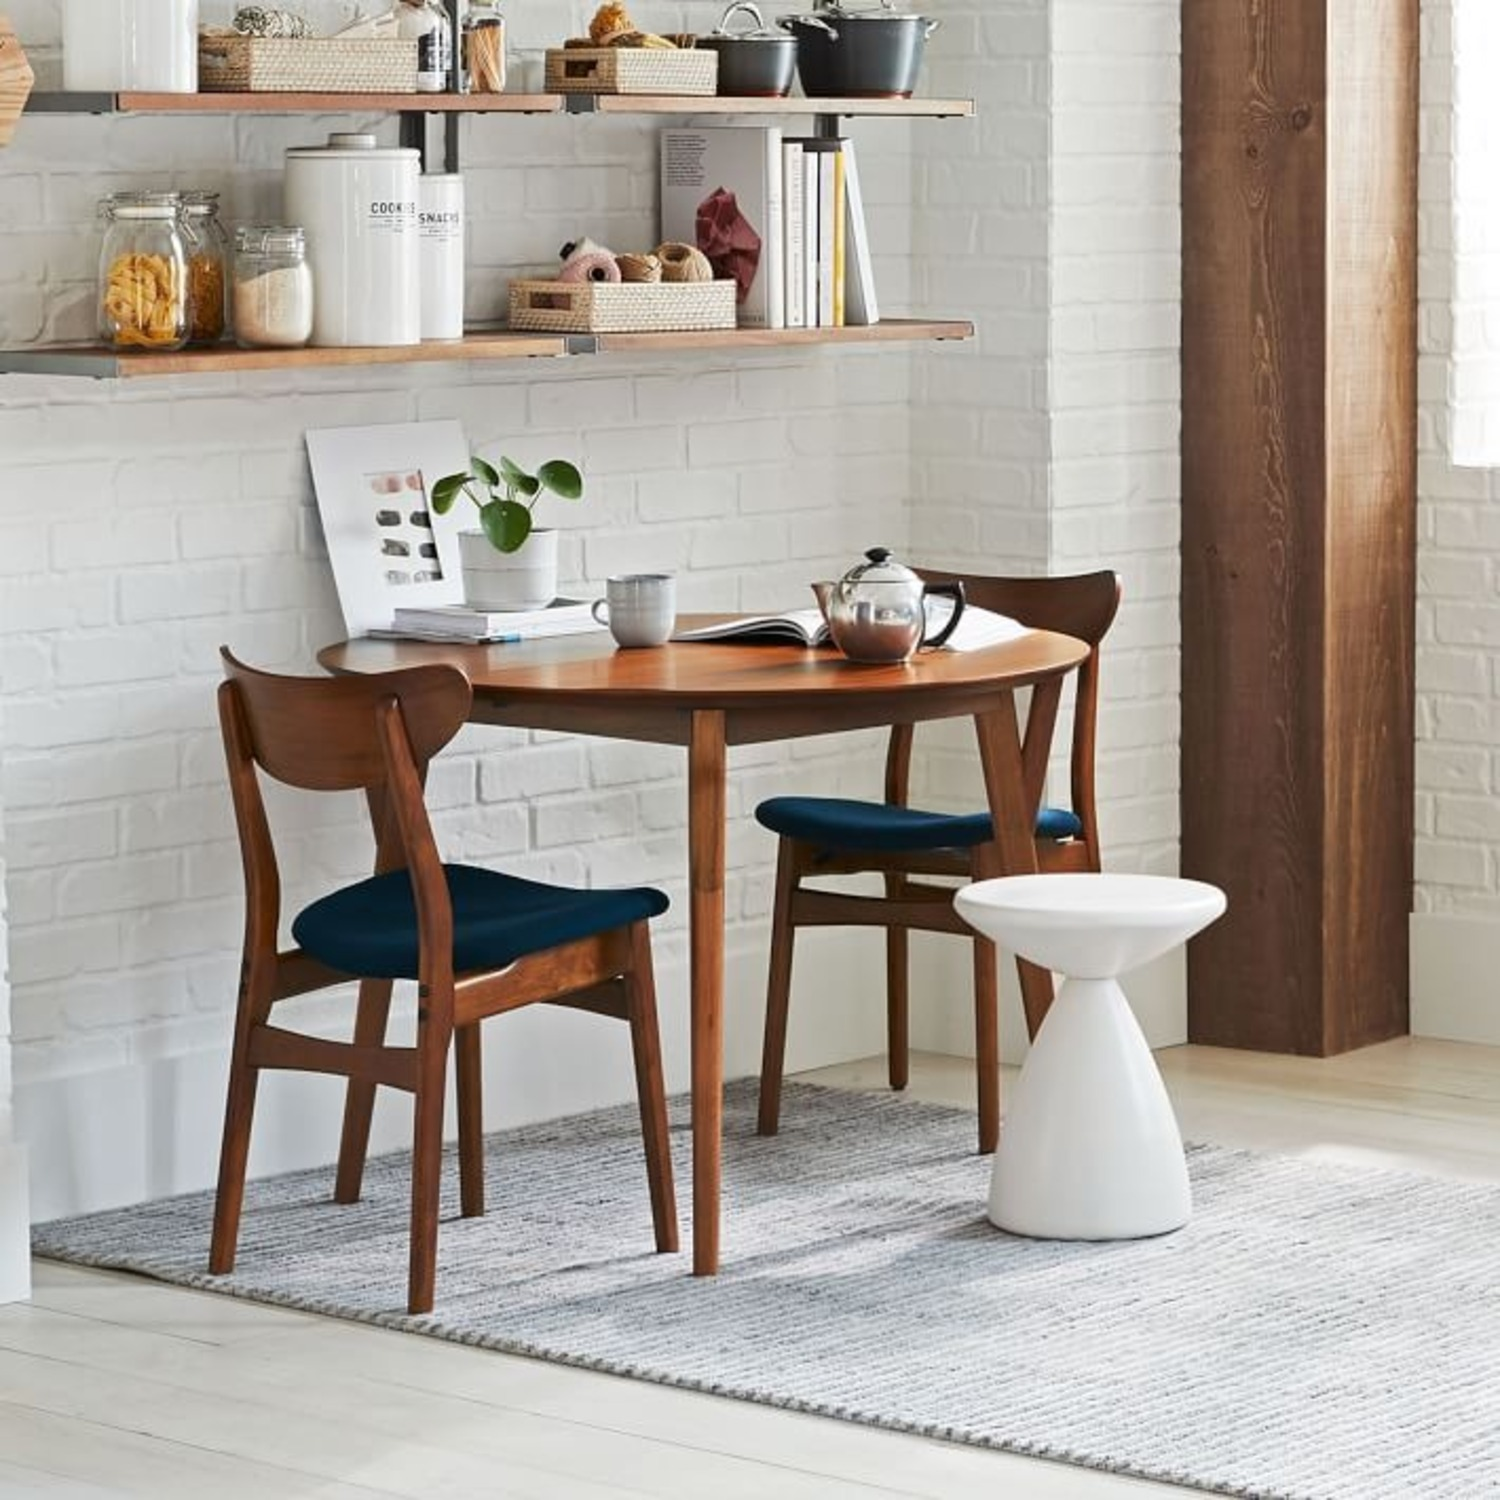 West Elm Classic Café Upholstered Dining Chair - image-3